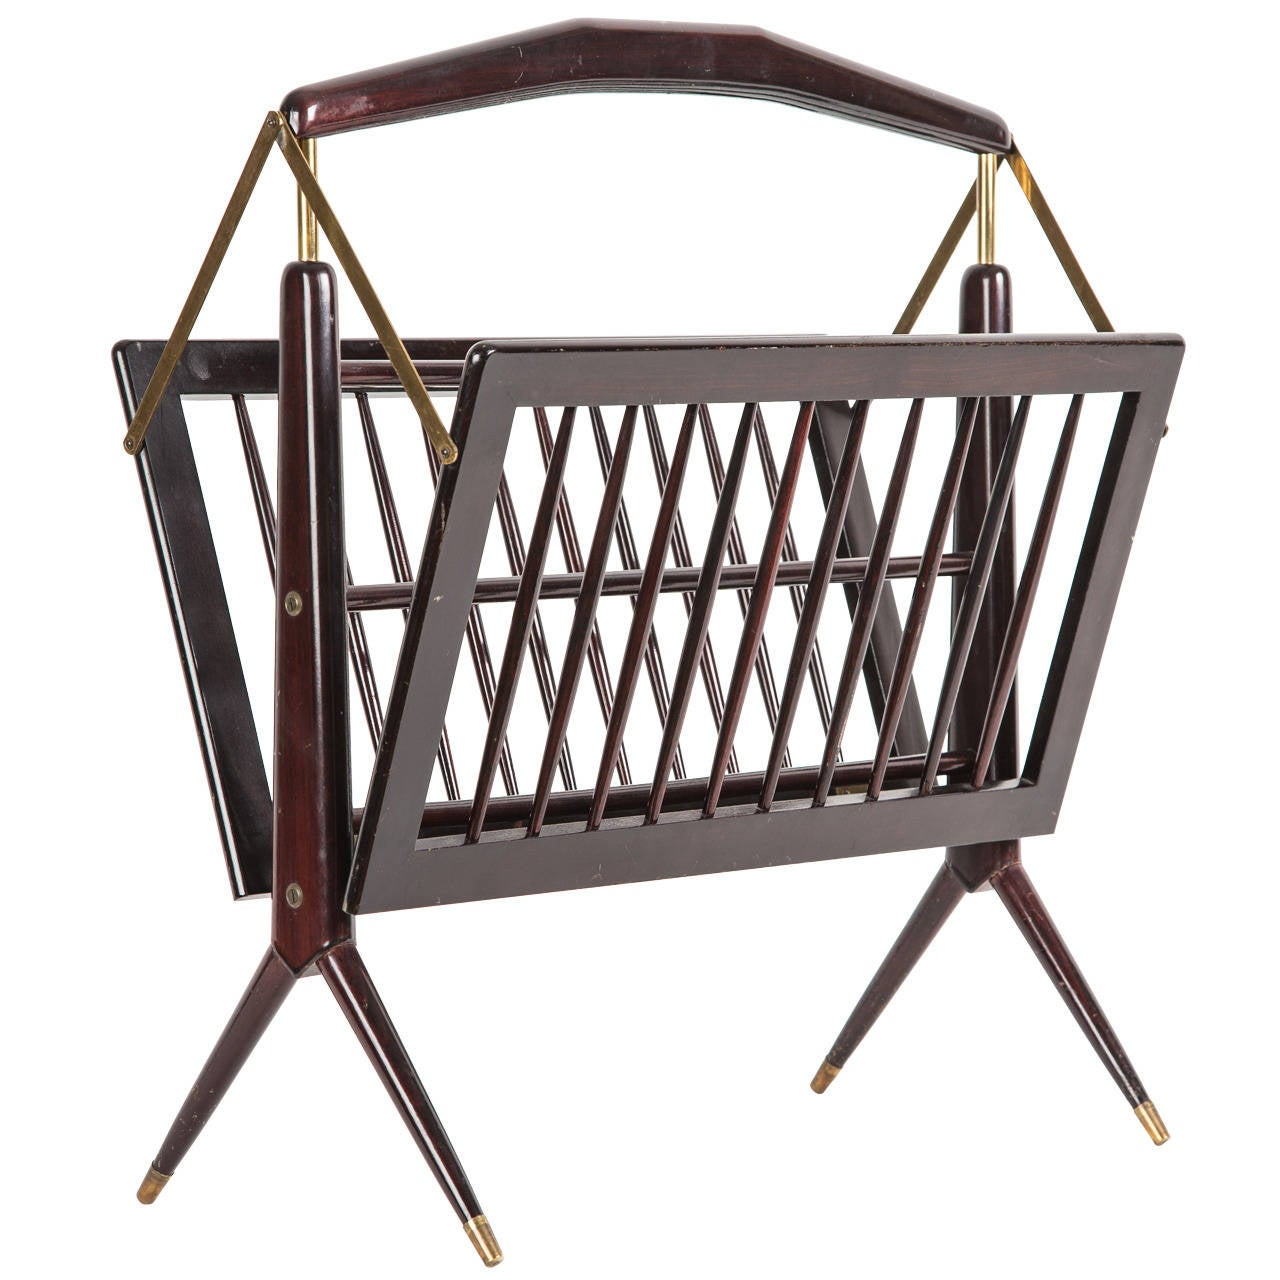 Rosewood Foldable Magazine Stand with Copper Elements in Gio Ponti Style